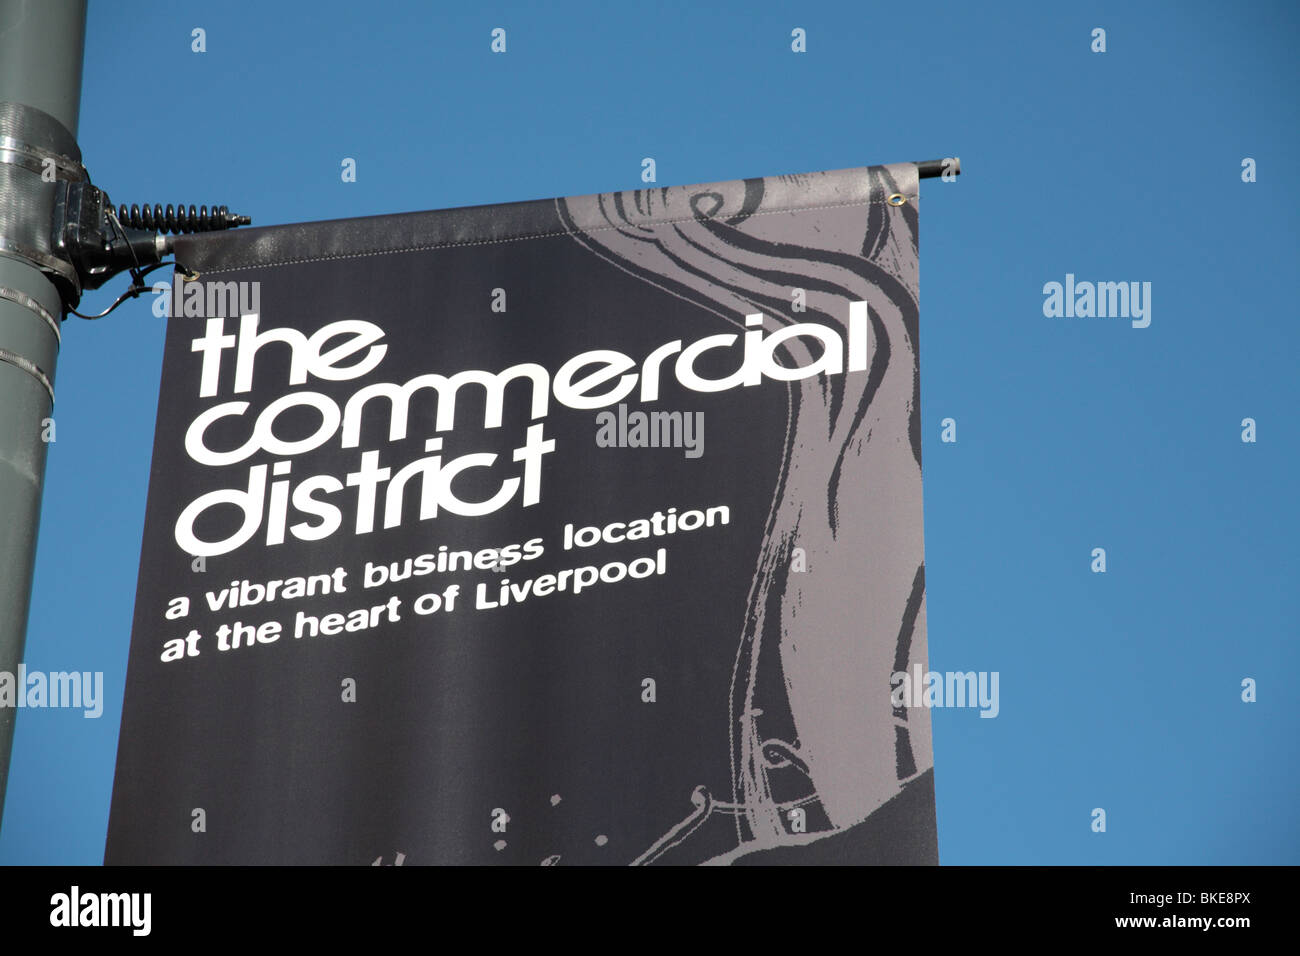 Liverpool's commercial district sign - Stock Image